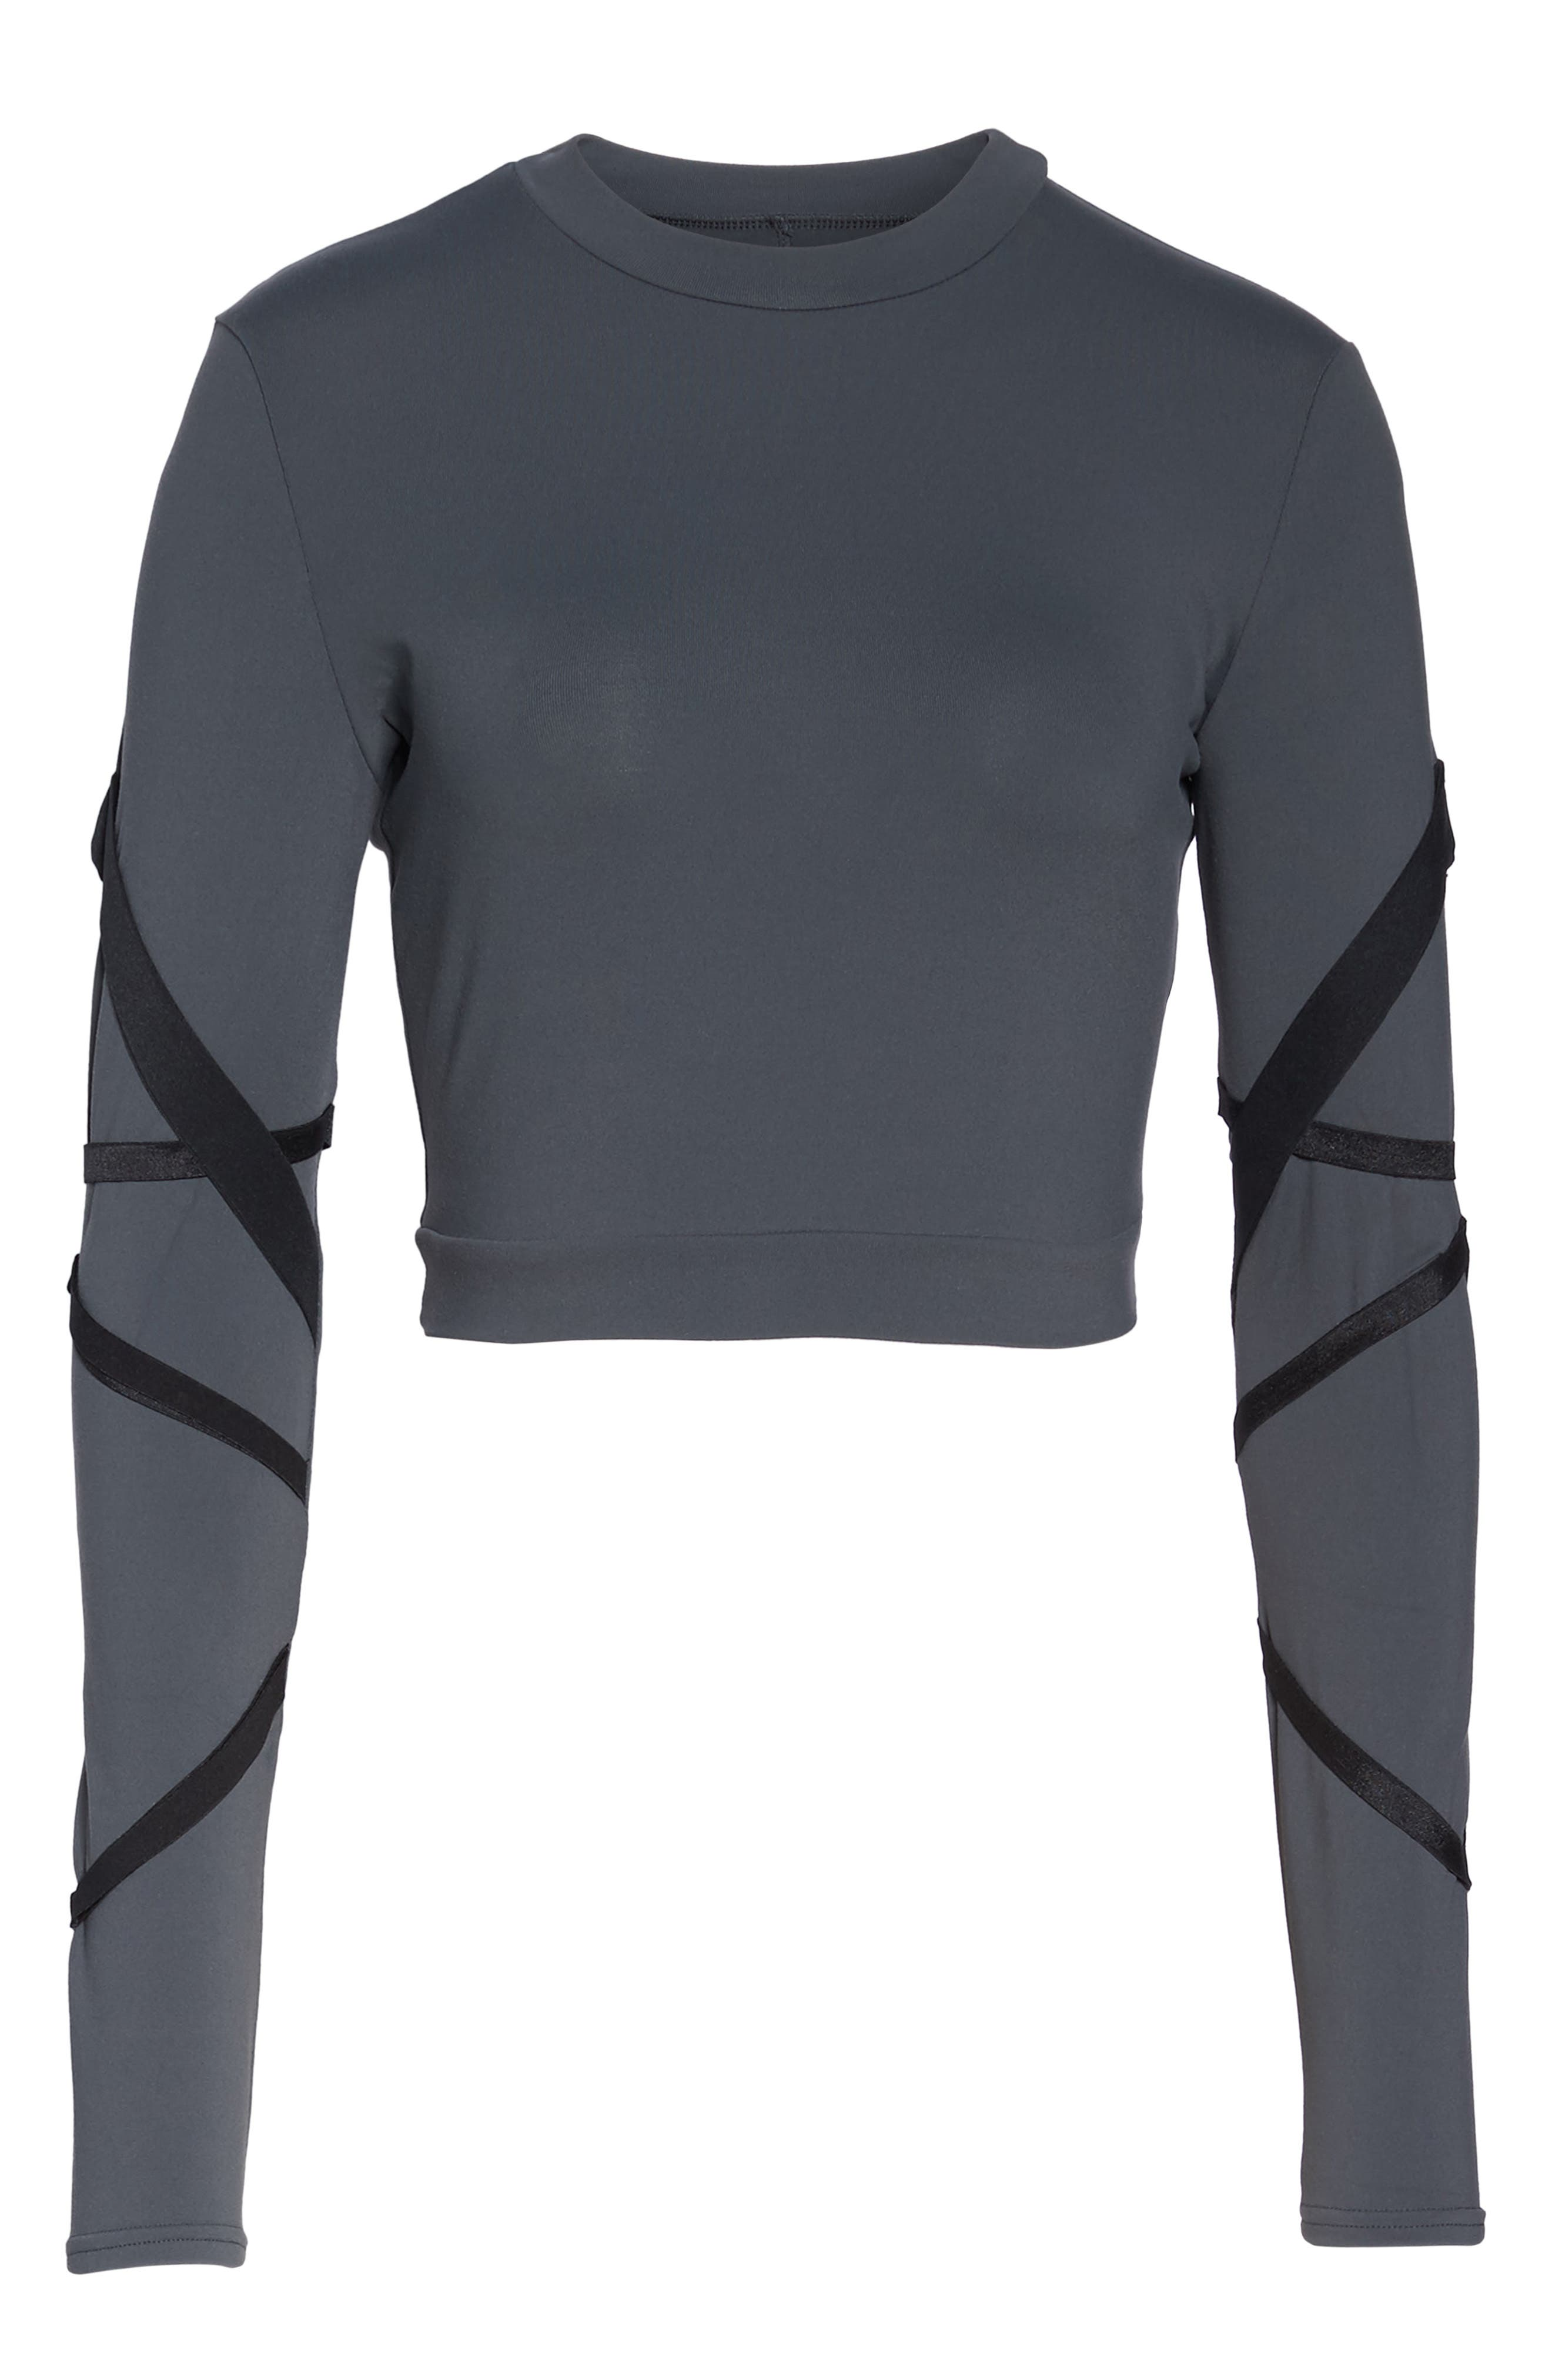 Tribe Long Sleeve Top,                             Alternate thumbnail 19, color,